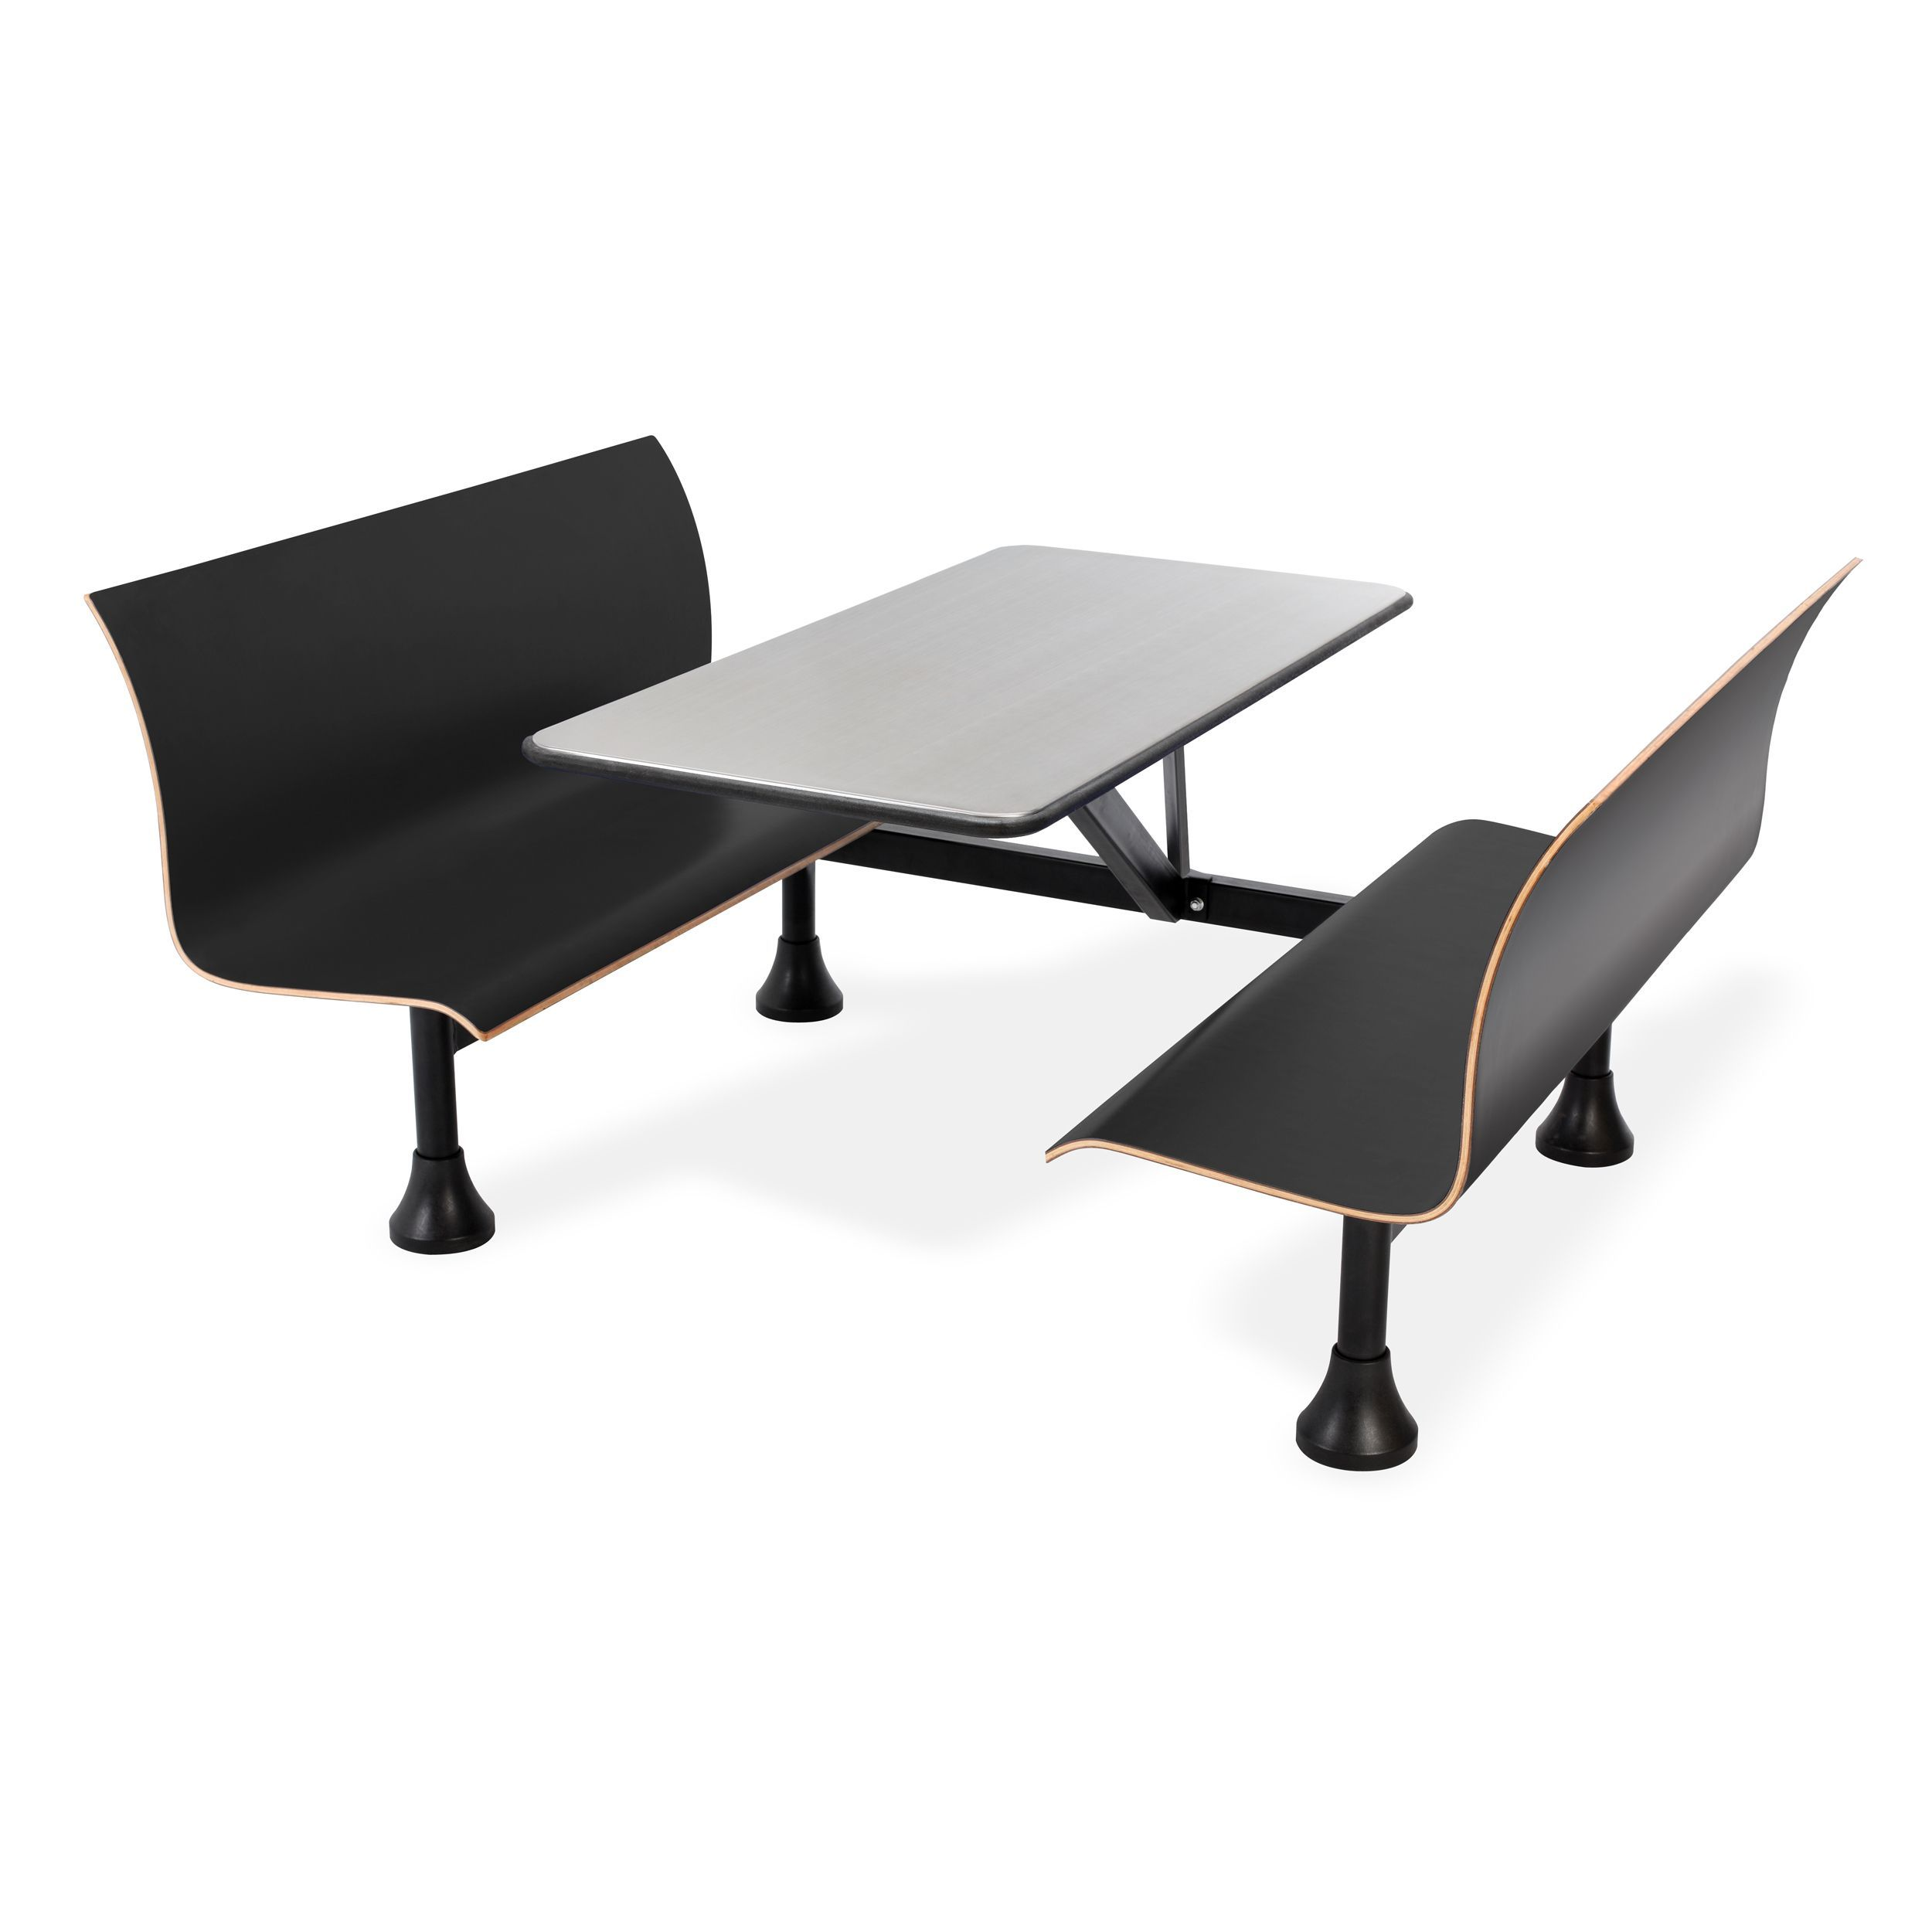 OFM 24 X 48 Retro Bench With End Beam Support   Overstock™ Shopping   The  Best Prices On OFM Utility Tables